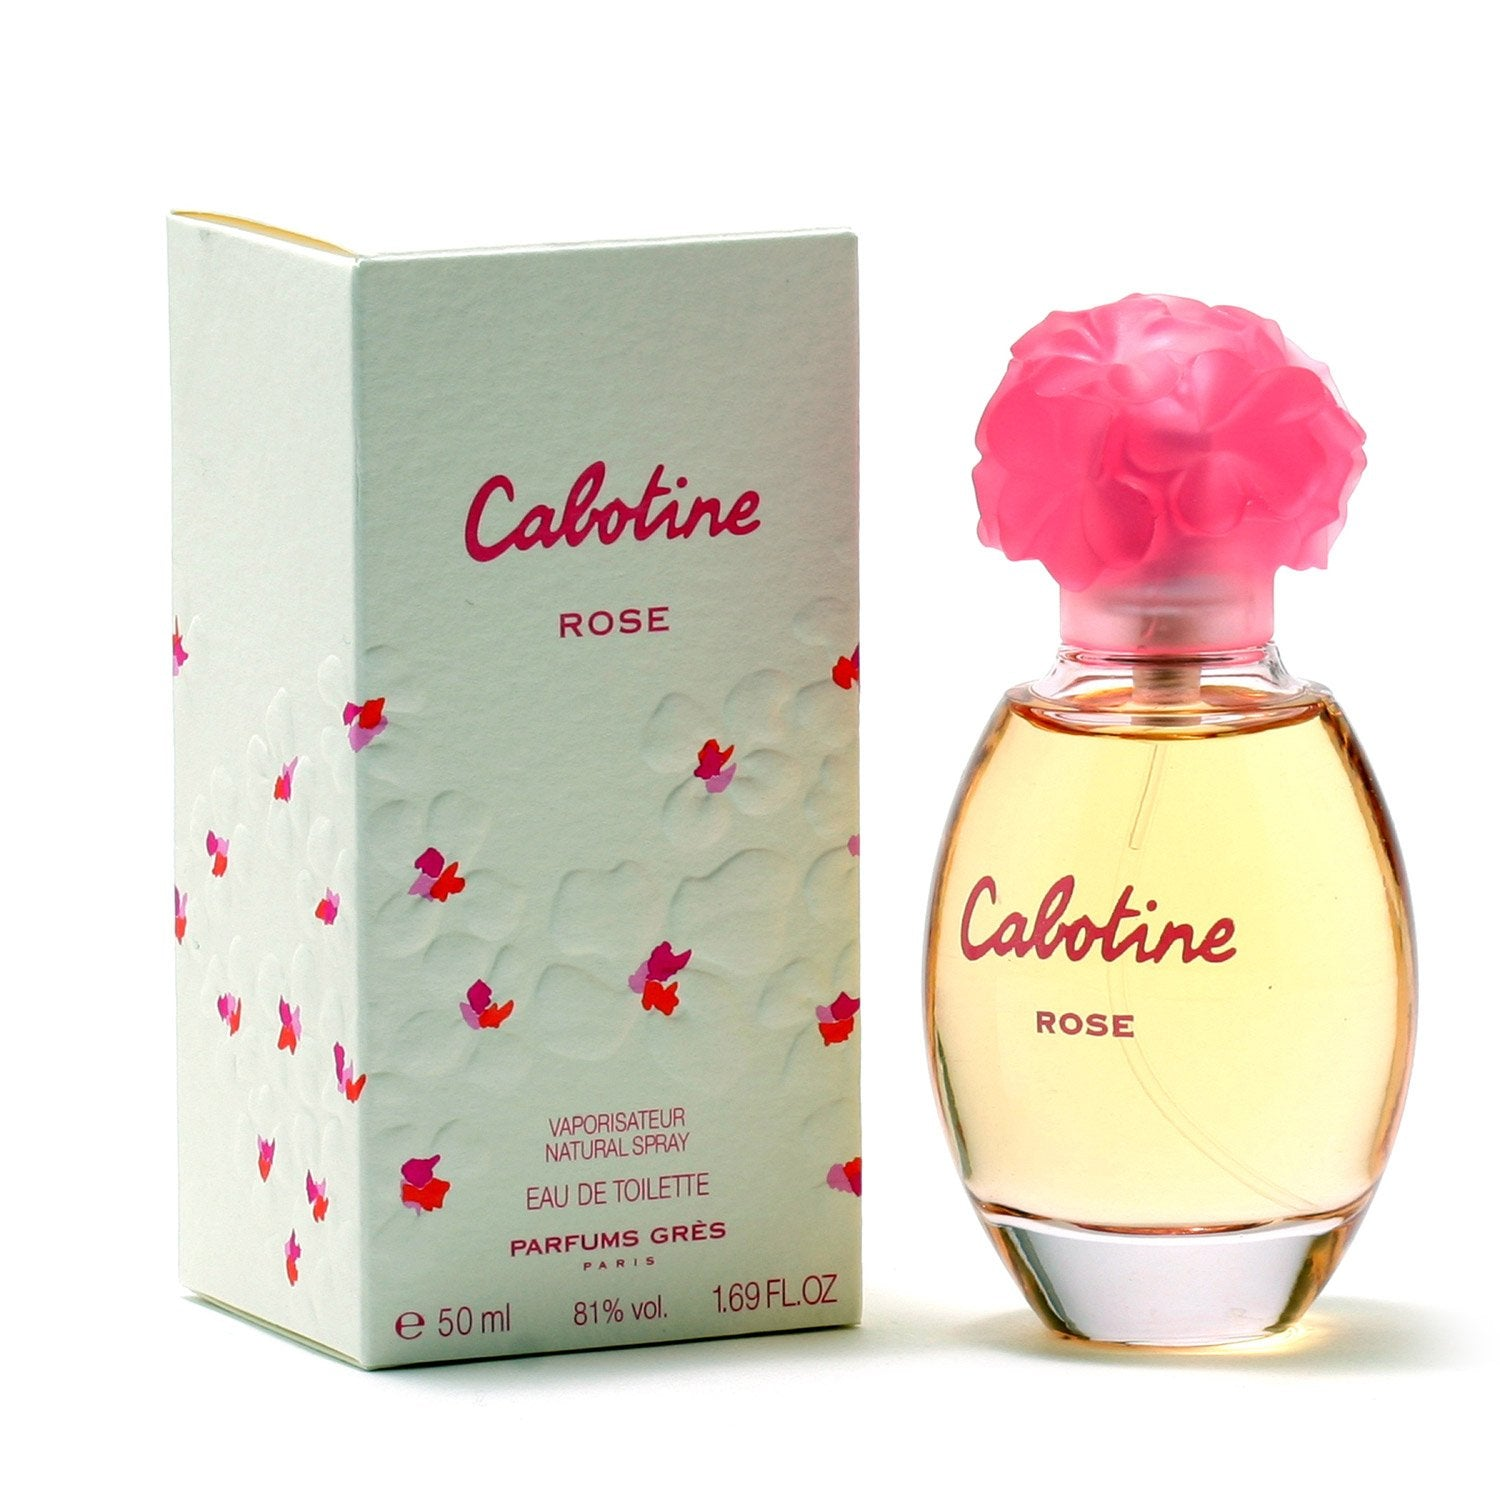 Perfume - CABOTINE ROSE FOR WOMEN BY PARFUMS GRES - EAU DE TOILETTE SPRAY